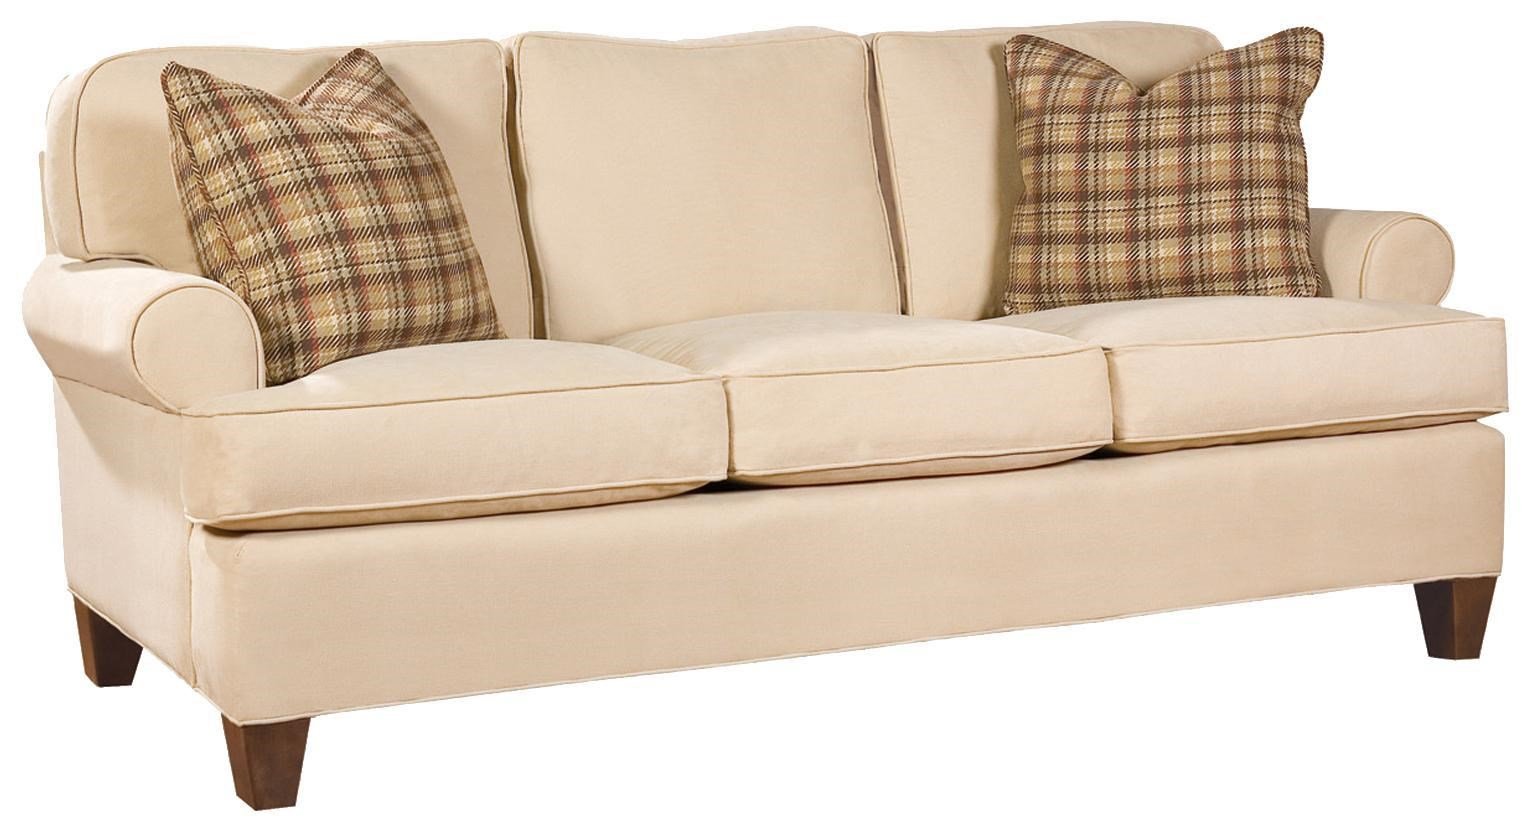 Huntington House Furniture Quality Huntington House 2041 2041 10 Customizable Stationary Sofa For